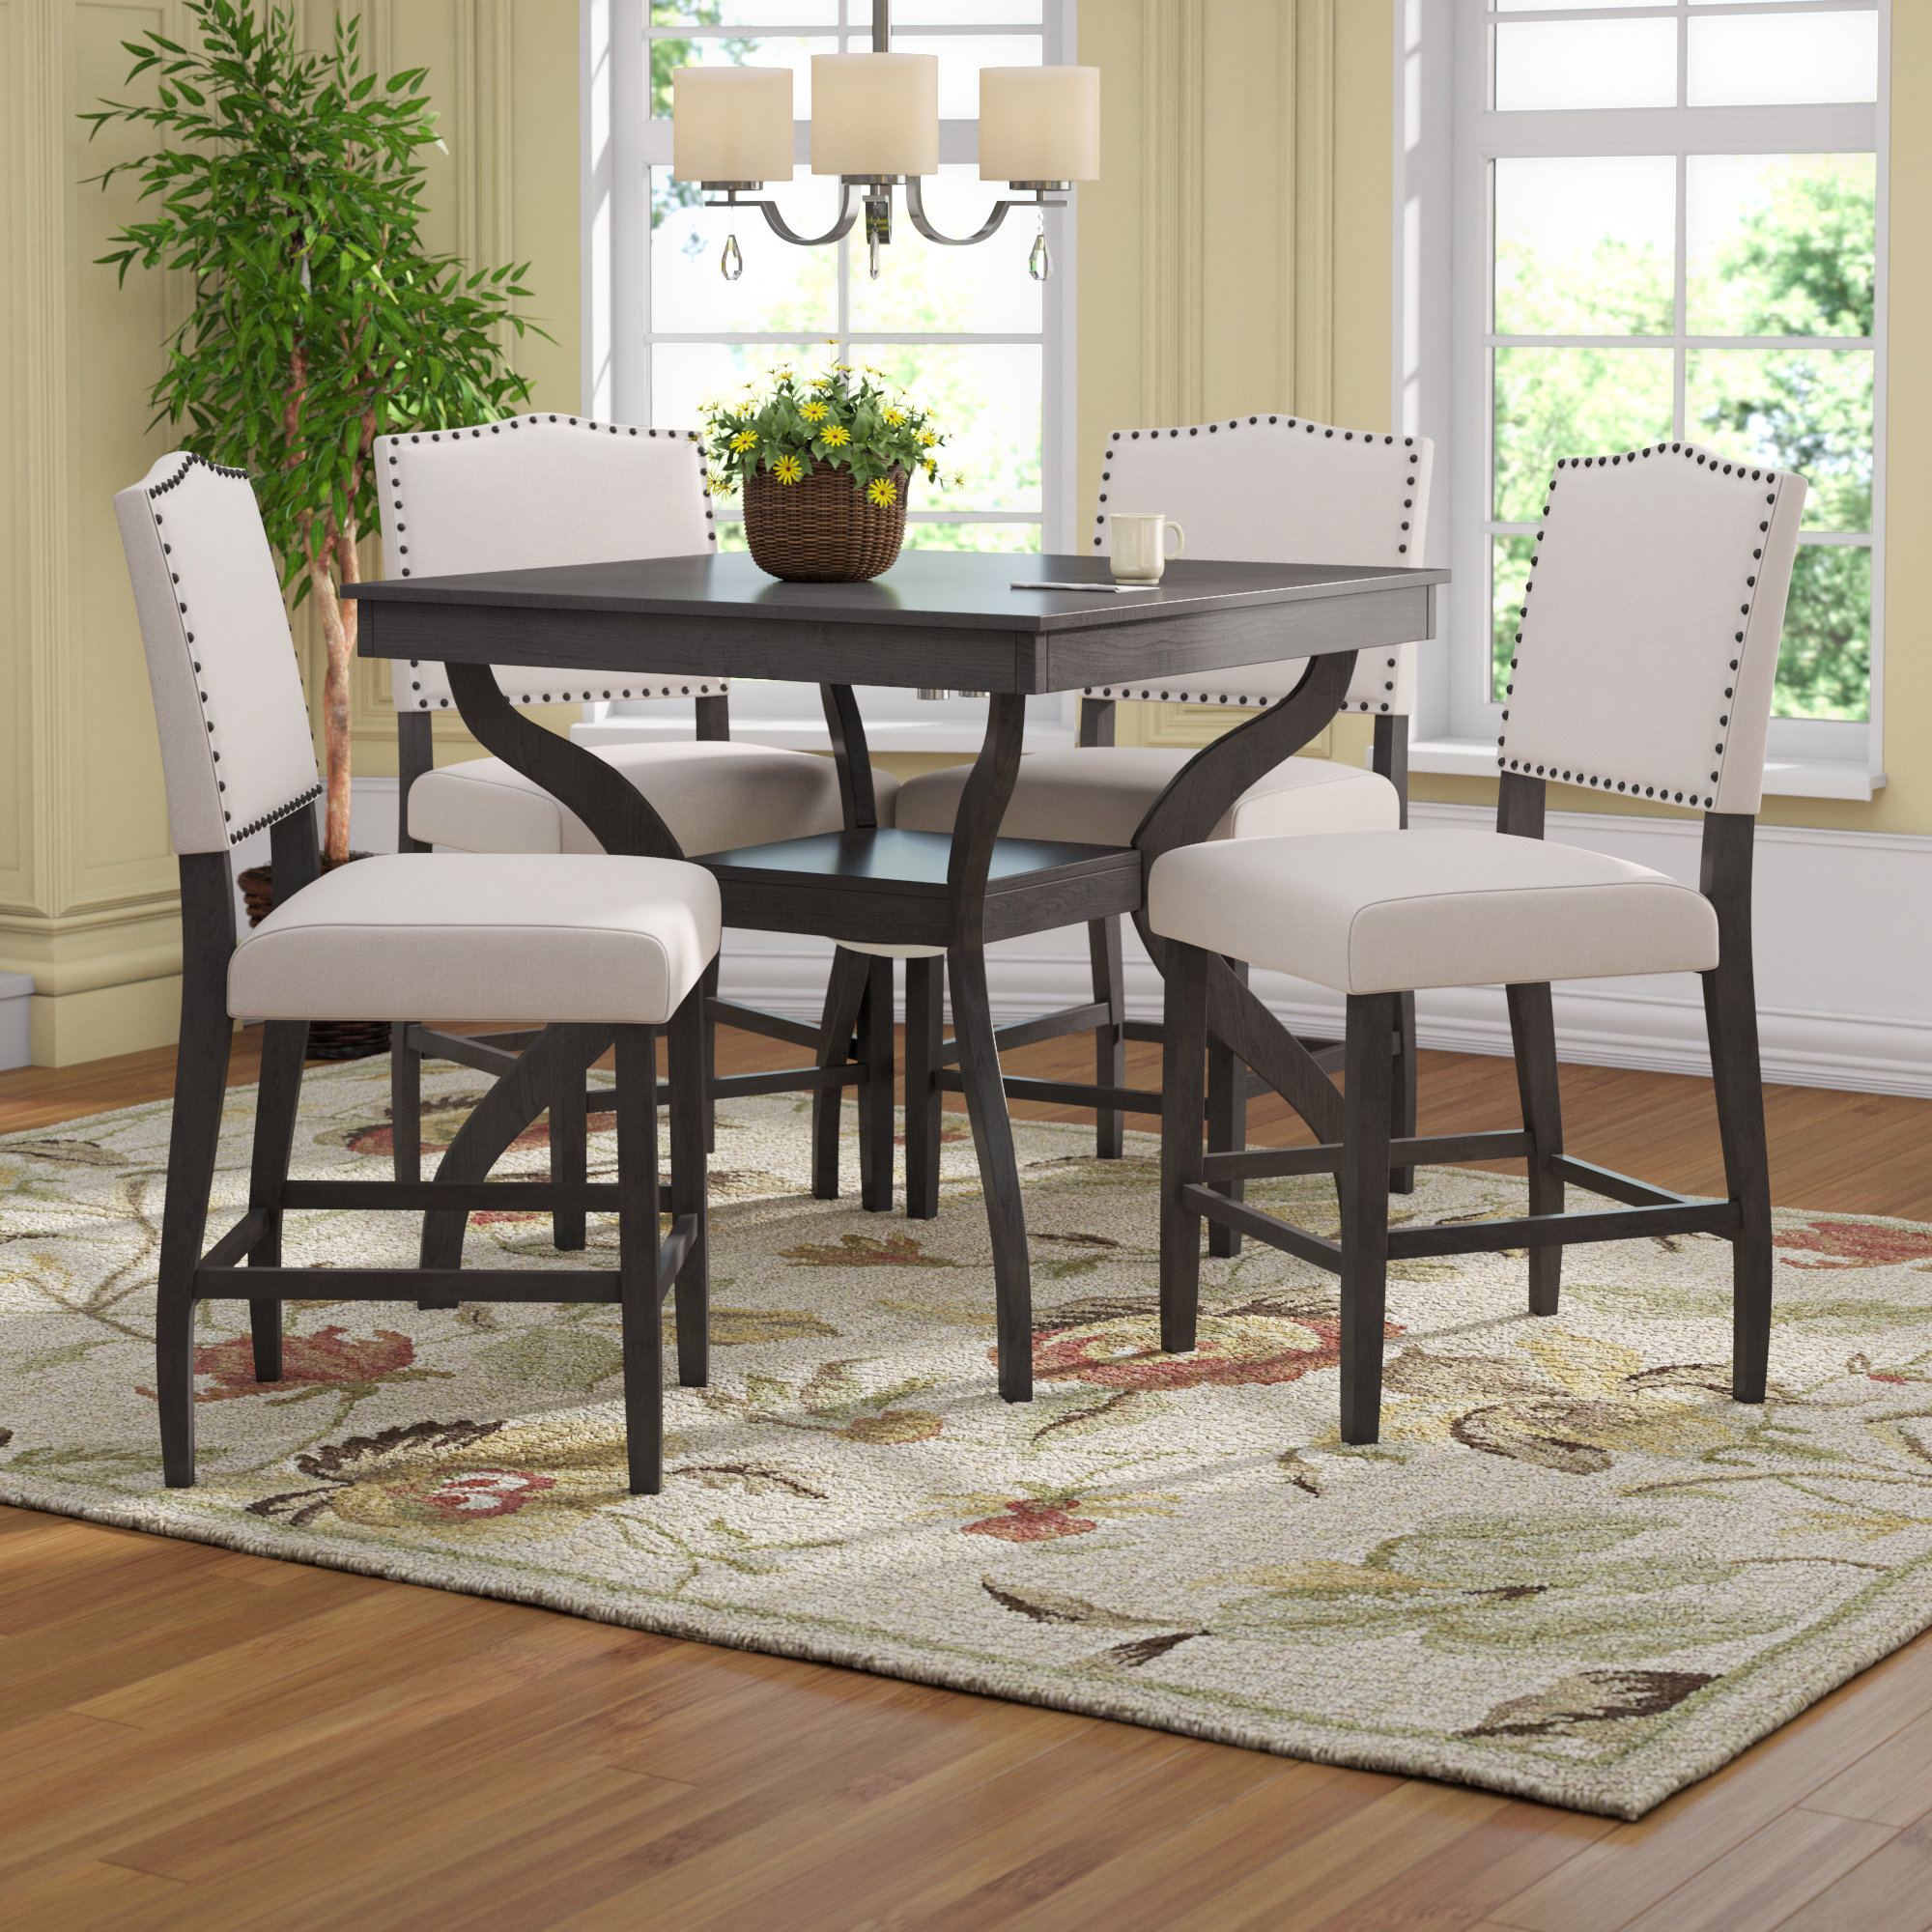 Ephraim 5 Piece Dining Sets Regarding Well Known Campton 5 Piece Counter Height Dining Set (View 15 of 20)